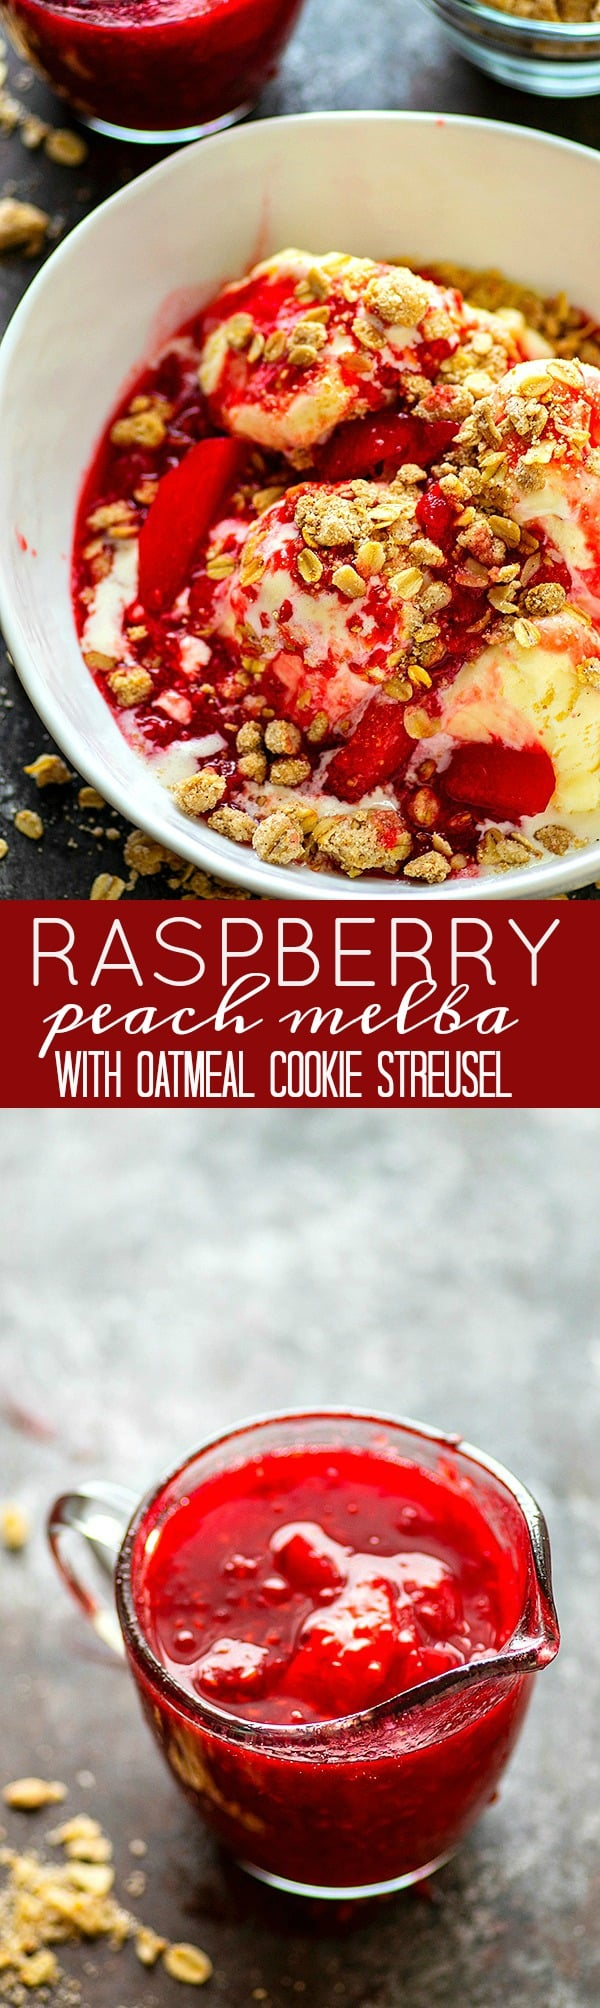 A tangy raspberry peach sauce gets draped over several scoops of creamy vanilla ice cream with a buttery oatmeal cookie streusel.-- This raspberry peach melba is summer in a bowl!